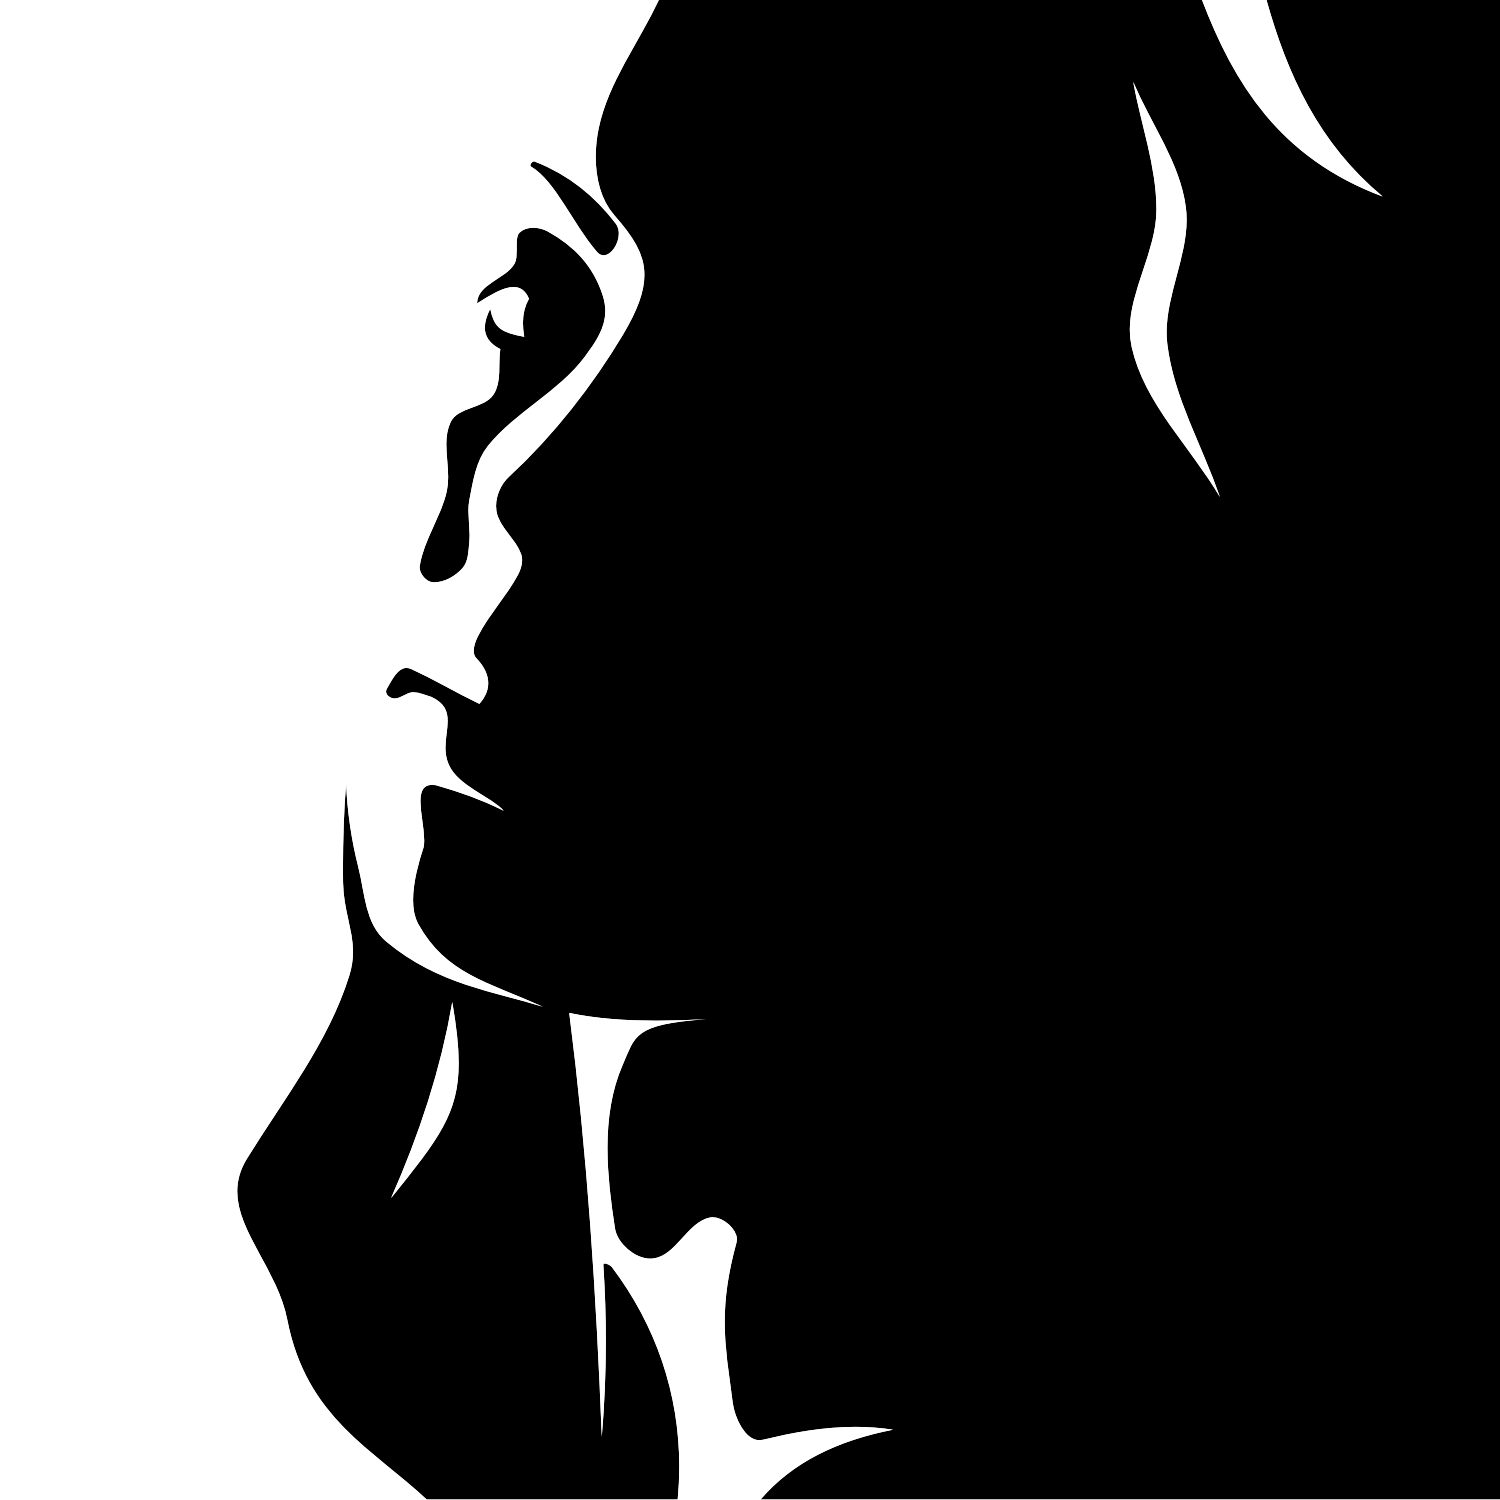 Female Face Silhouette Images